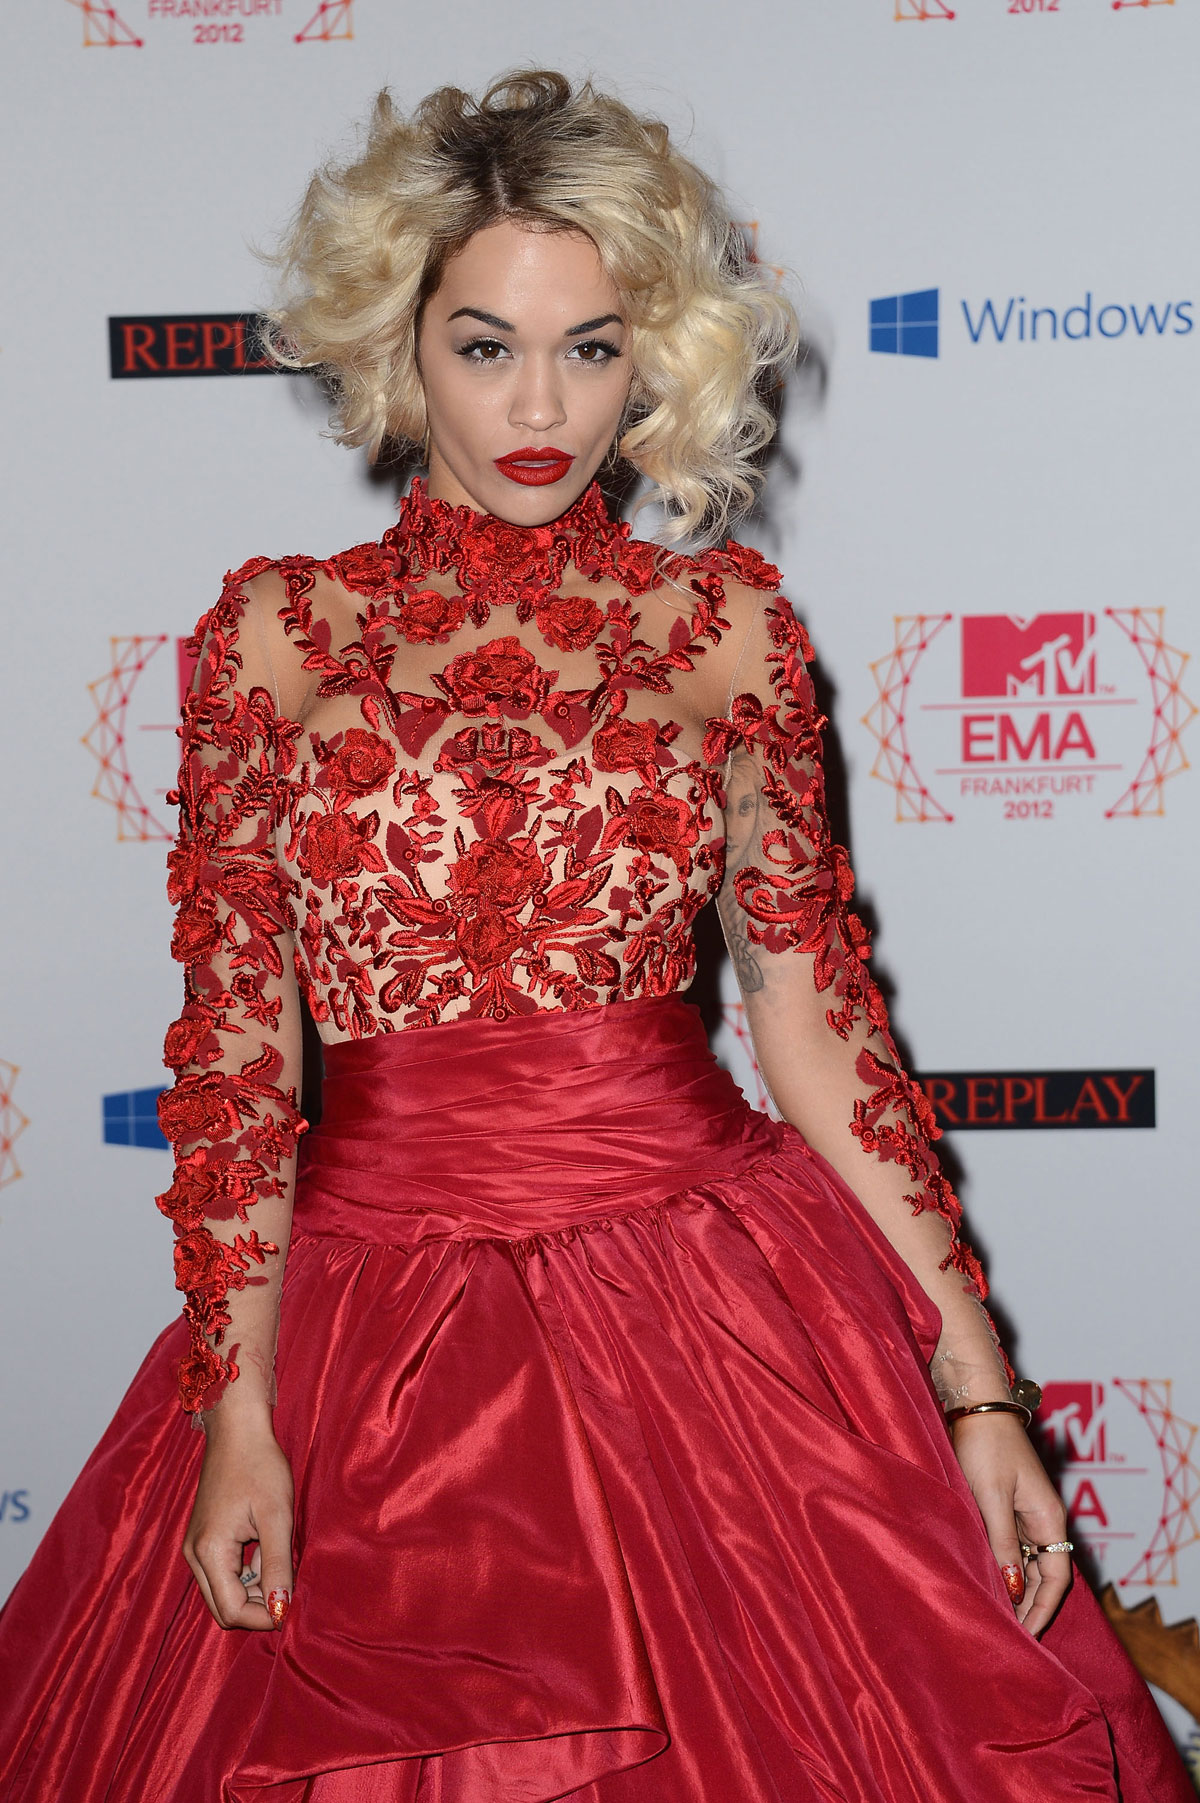 ora muslim Rita ora was born in pristina, yugoslavia (now kosovo) she was raised in london, england there's a rumor going around that ora is muslim 1 because she was born in a country with a large muslim population 2.